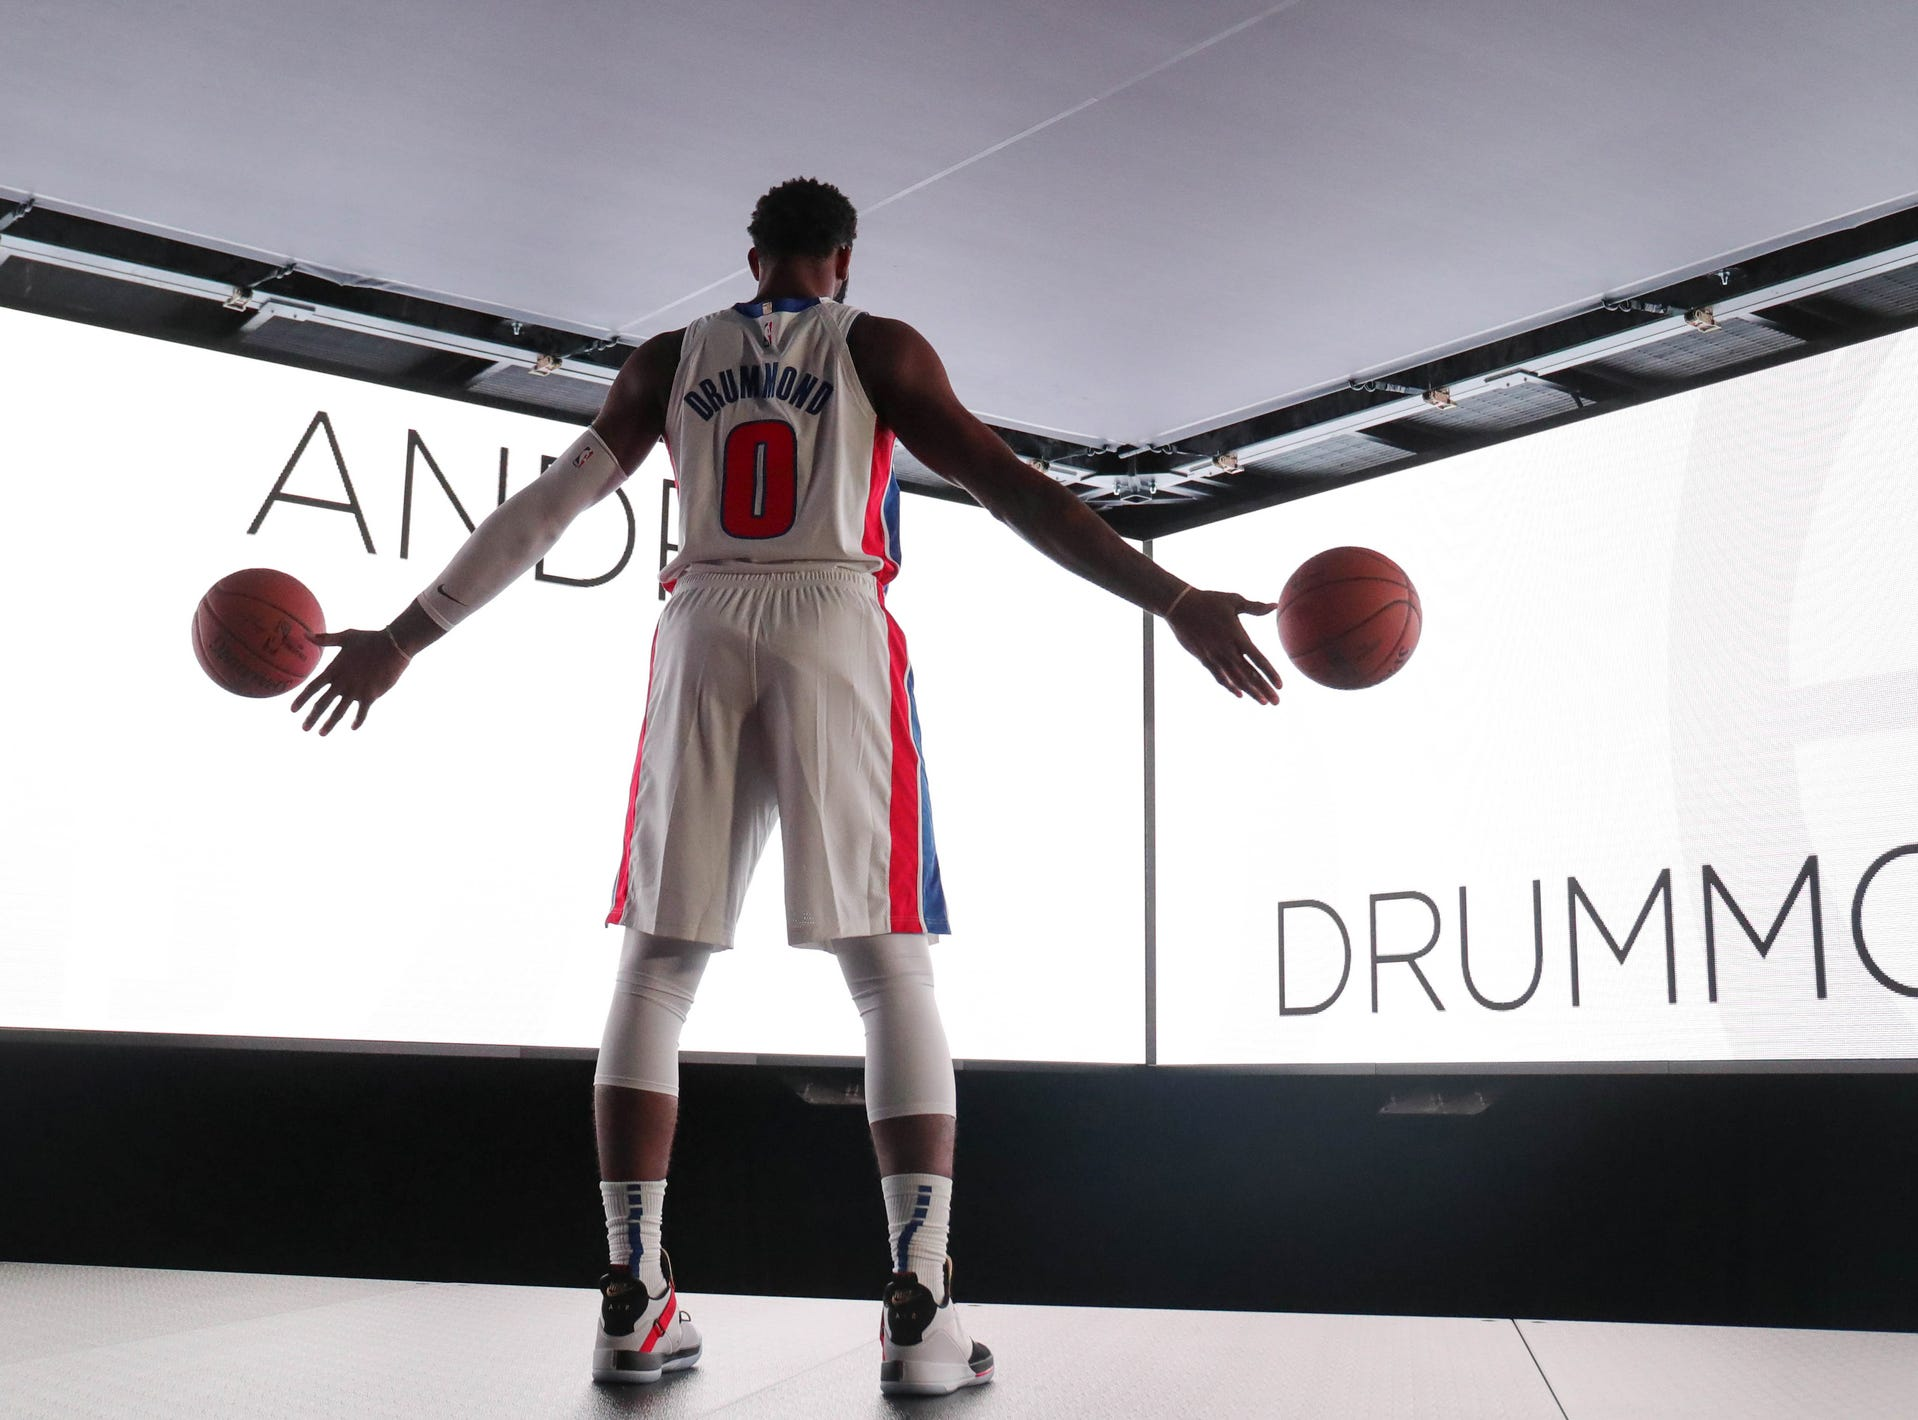 Detroit Pistons center Andre Drummond posed for pictures during Media Day held at Little Caesars Arena in Detroit Monday, September 24, 2018.